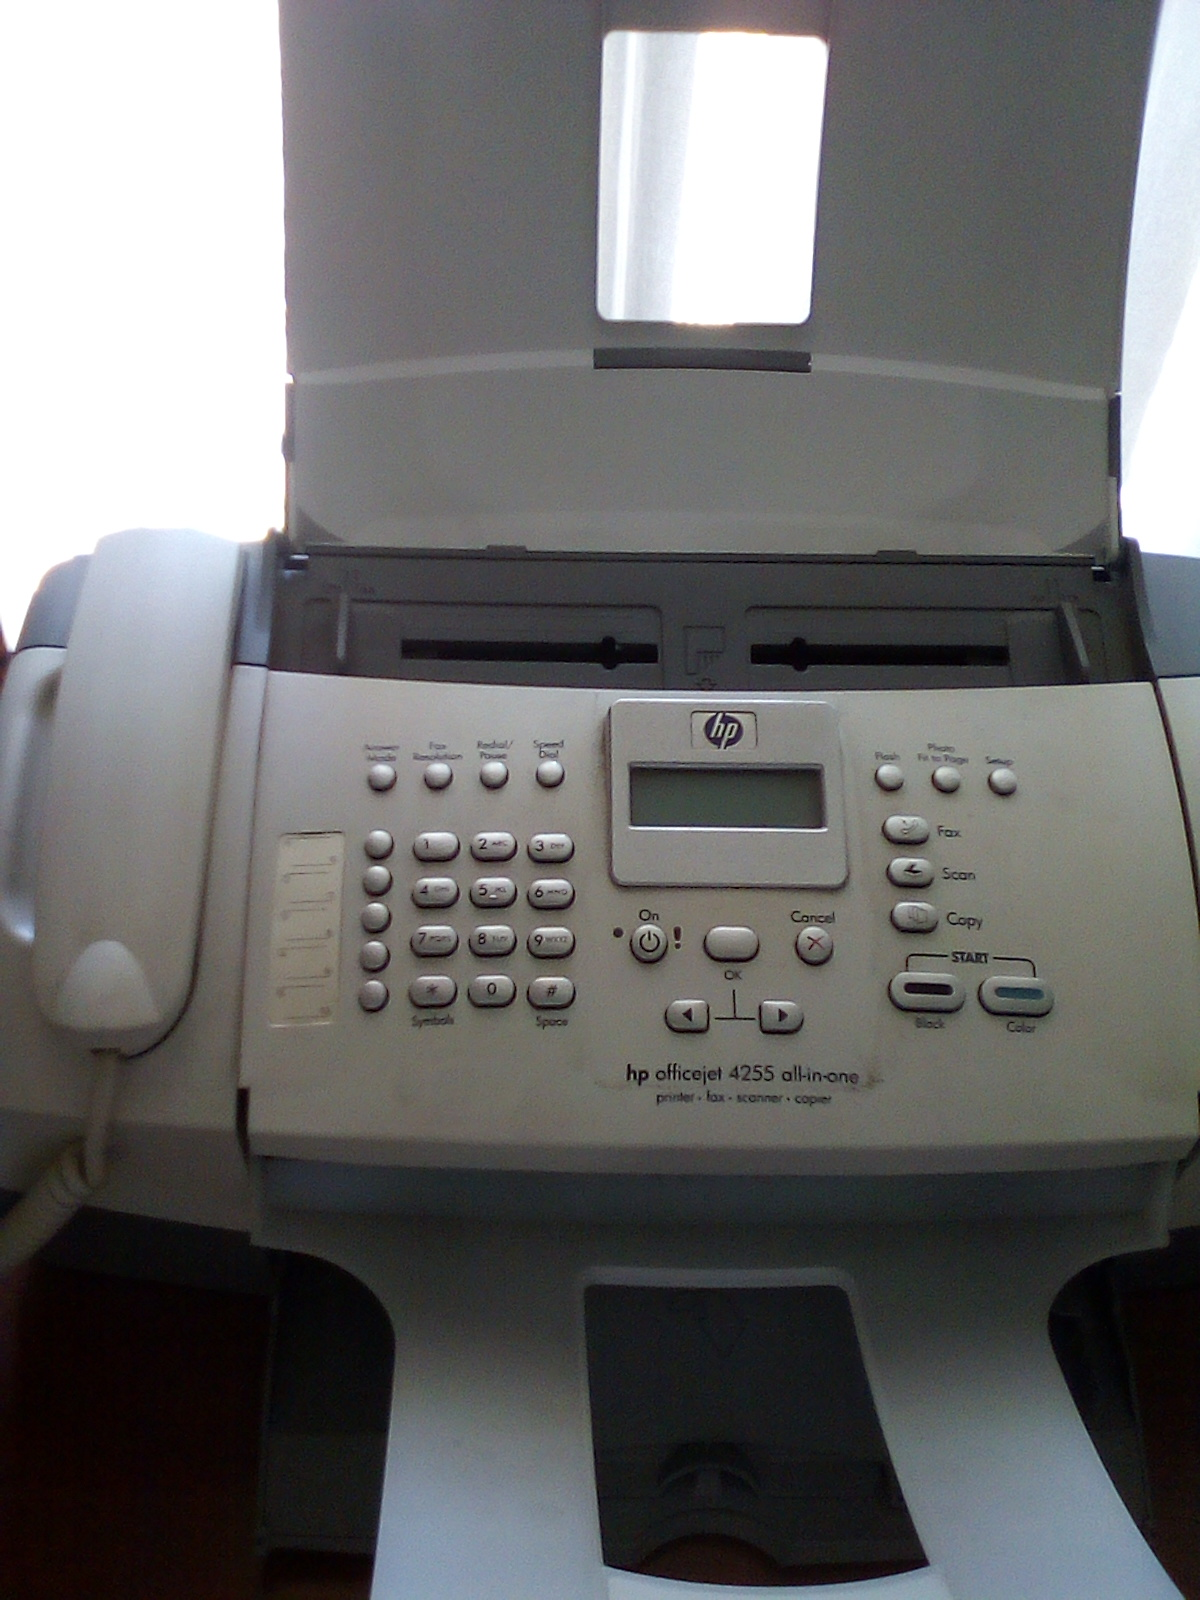 hp office jet all in one printer scanner fax and copier junk mail